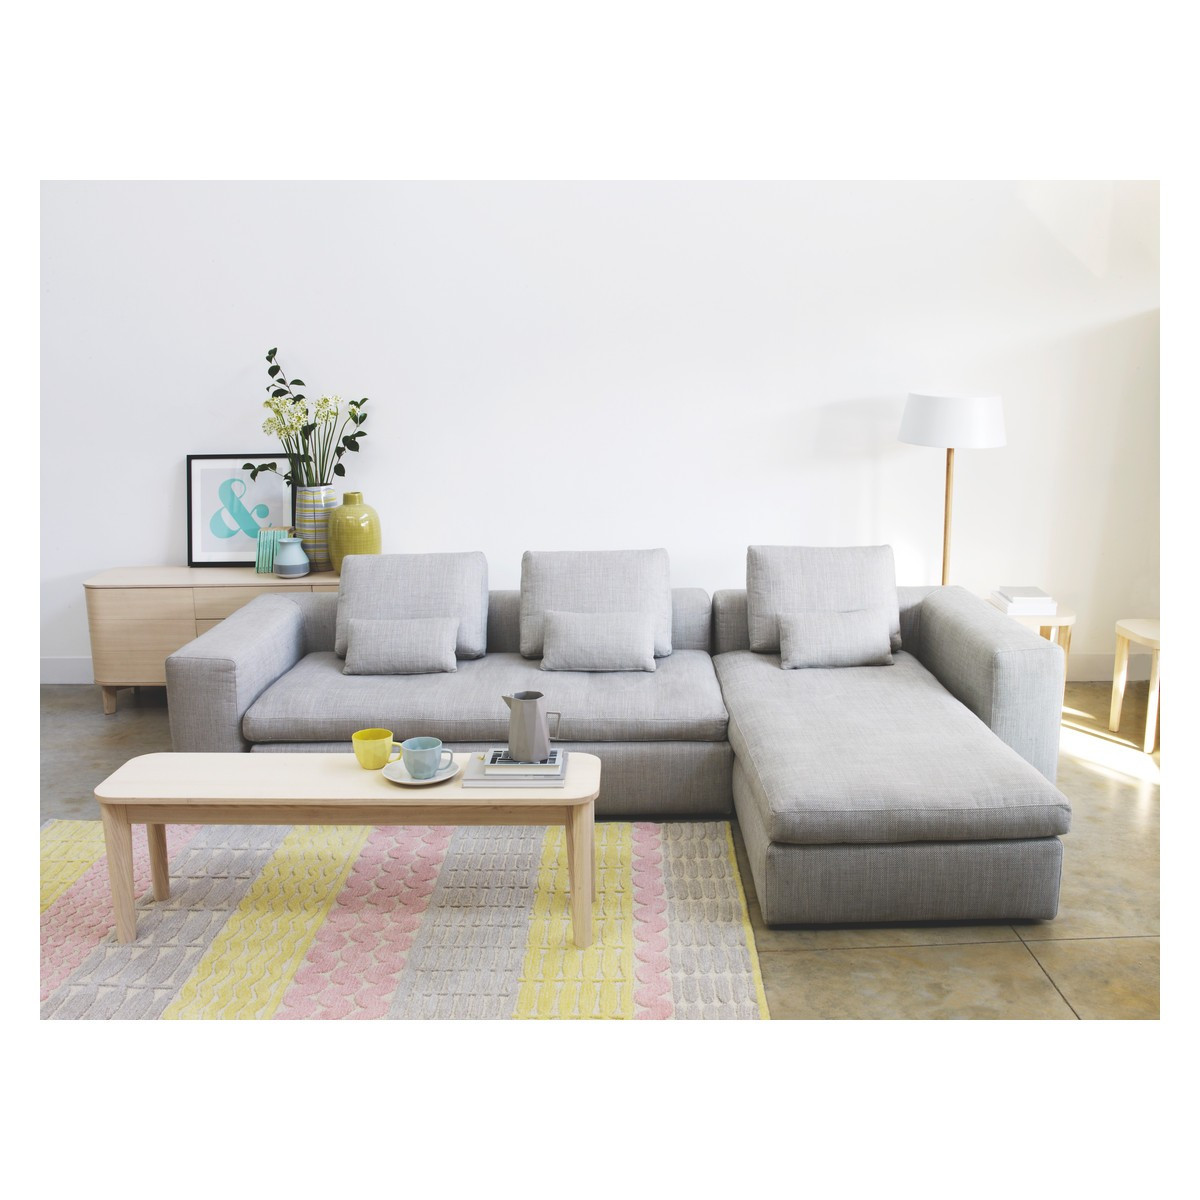 Best ideas about Sofa Bed Sectional . Save or Pin Sofas Chaise Sofa Bed Hideabed Now.